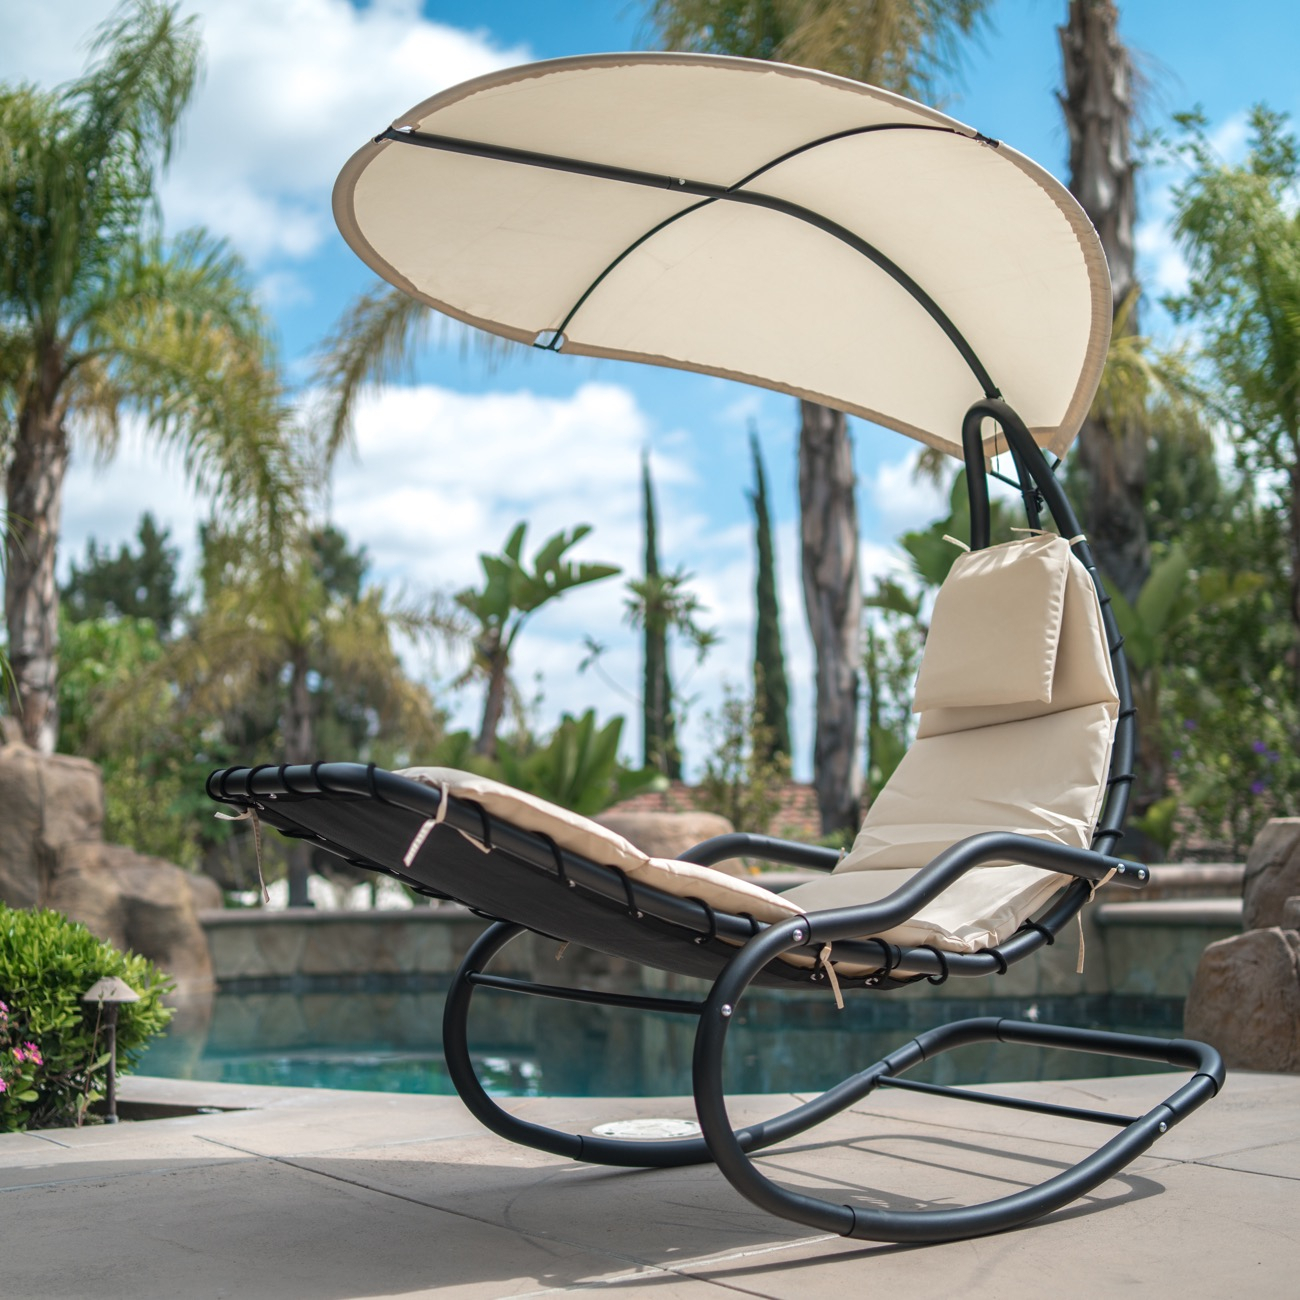 Inspiration about Details About Outdoor Rocking Chaise Lounge Chair Cushion W/canopy Shade Blue, Orange, White For Orange Rocking Chairs Lounge Chairs (#17 of 20)